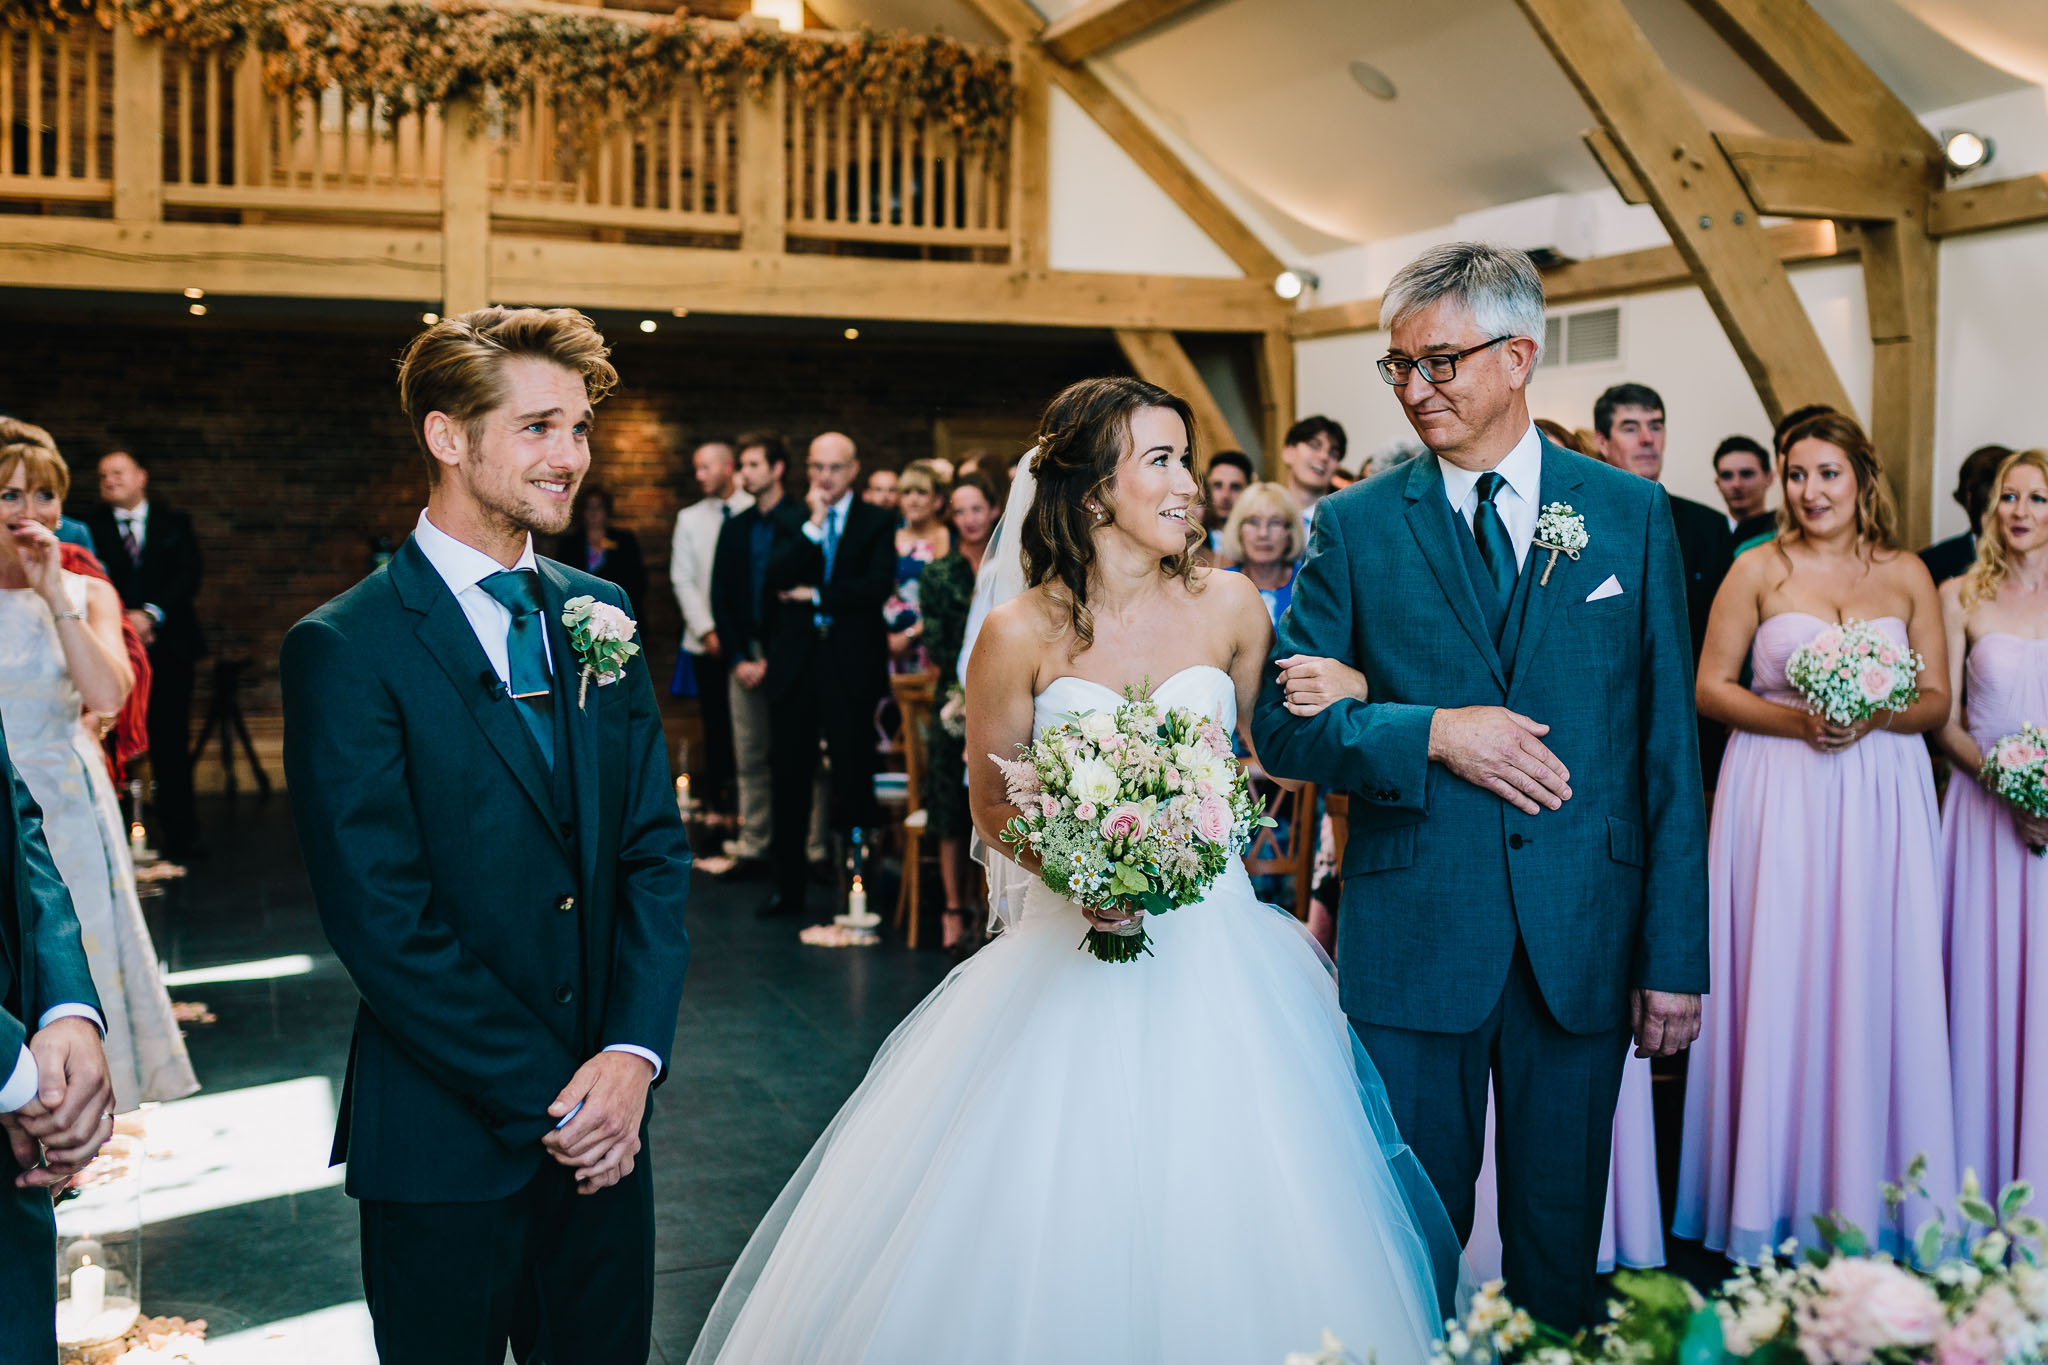 FATHER OF THE BRIDE LOOKING AT DAUGHTER BEFORE GIVING HER AWAY